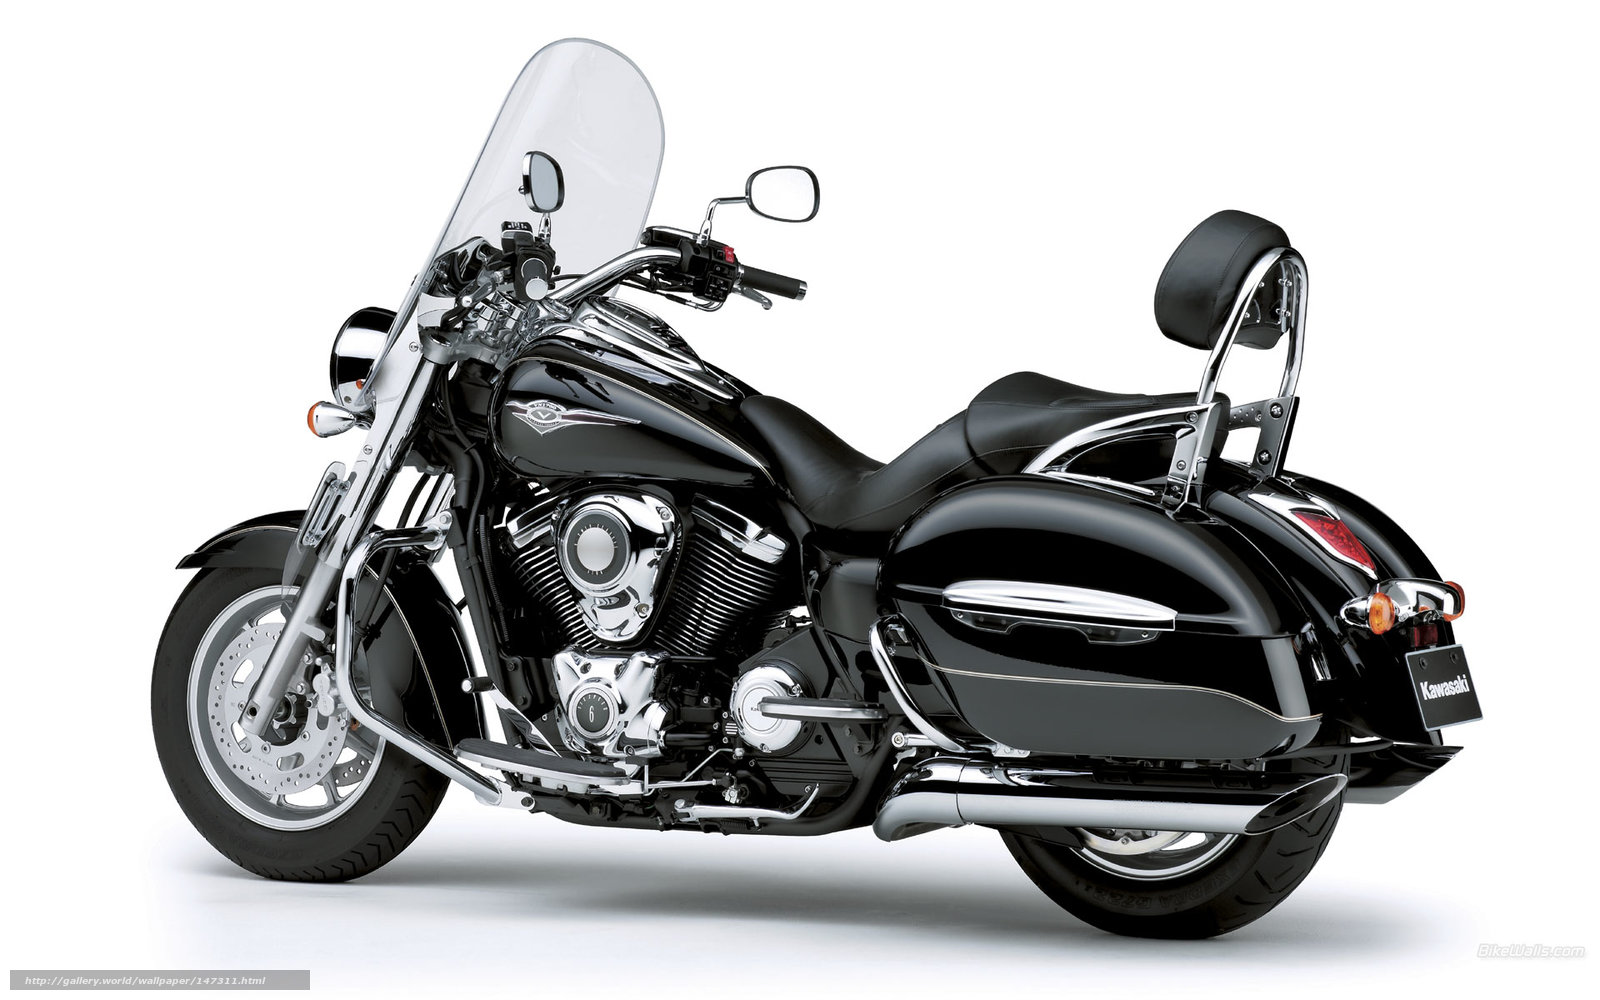 2012 street glide screamin eagle cvo flhxse3 new 2012 likewise Watch furthermore Watch together with Honda vtx 1800 sport cruiser 2006 as well Watch. on honda vtx 1800 custom